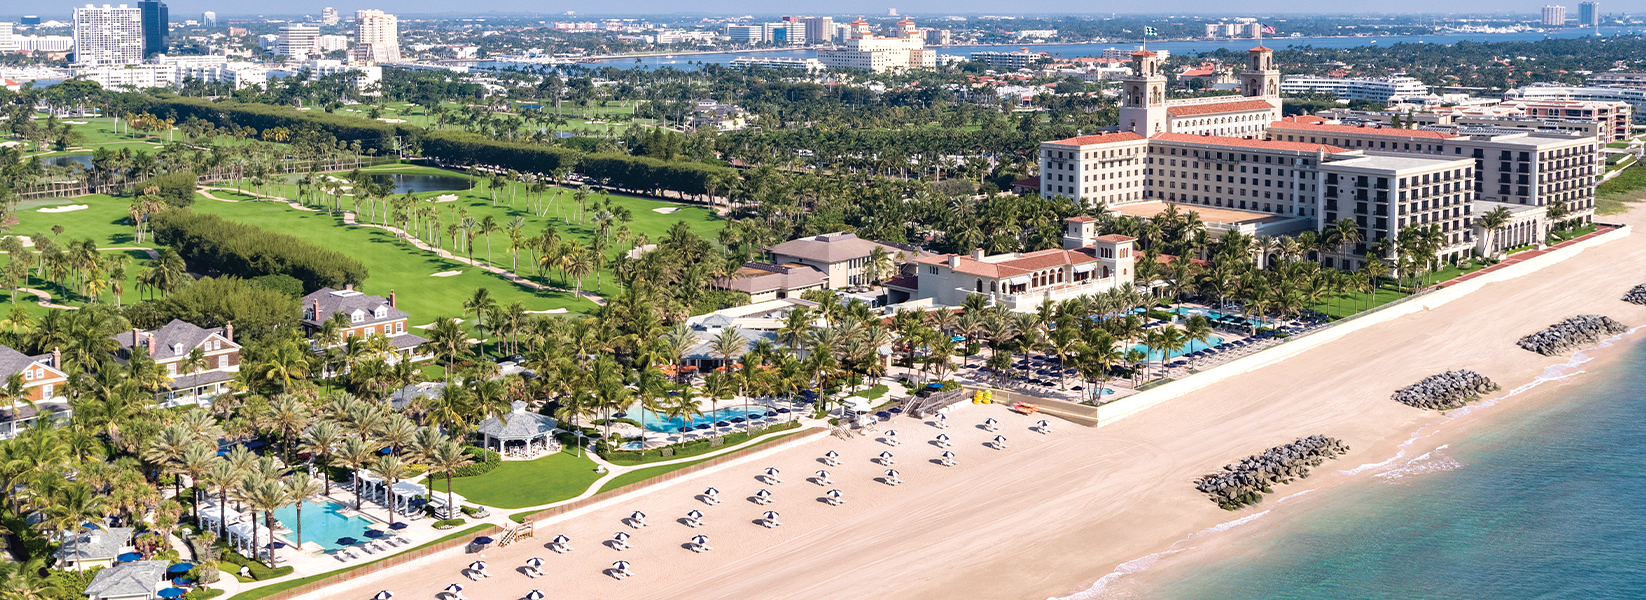 Aerial view of The Breakers Beachfront Experience